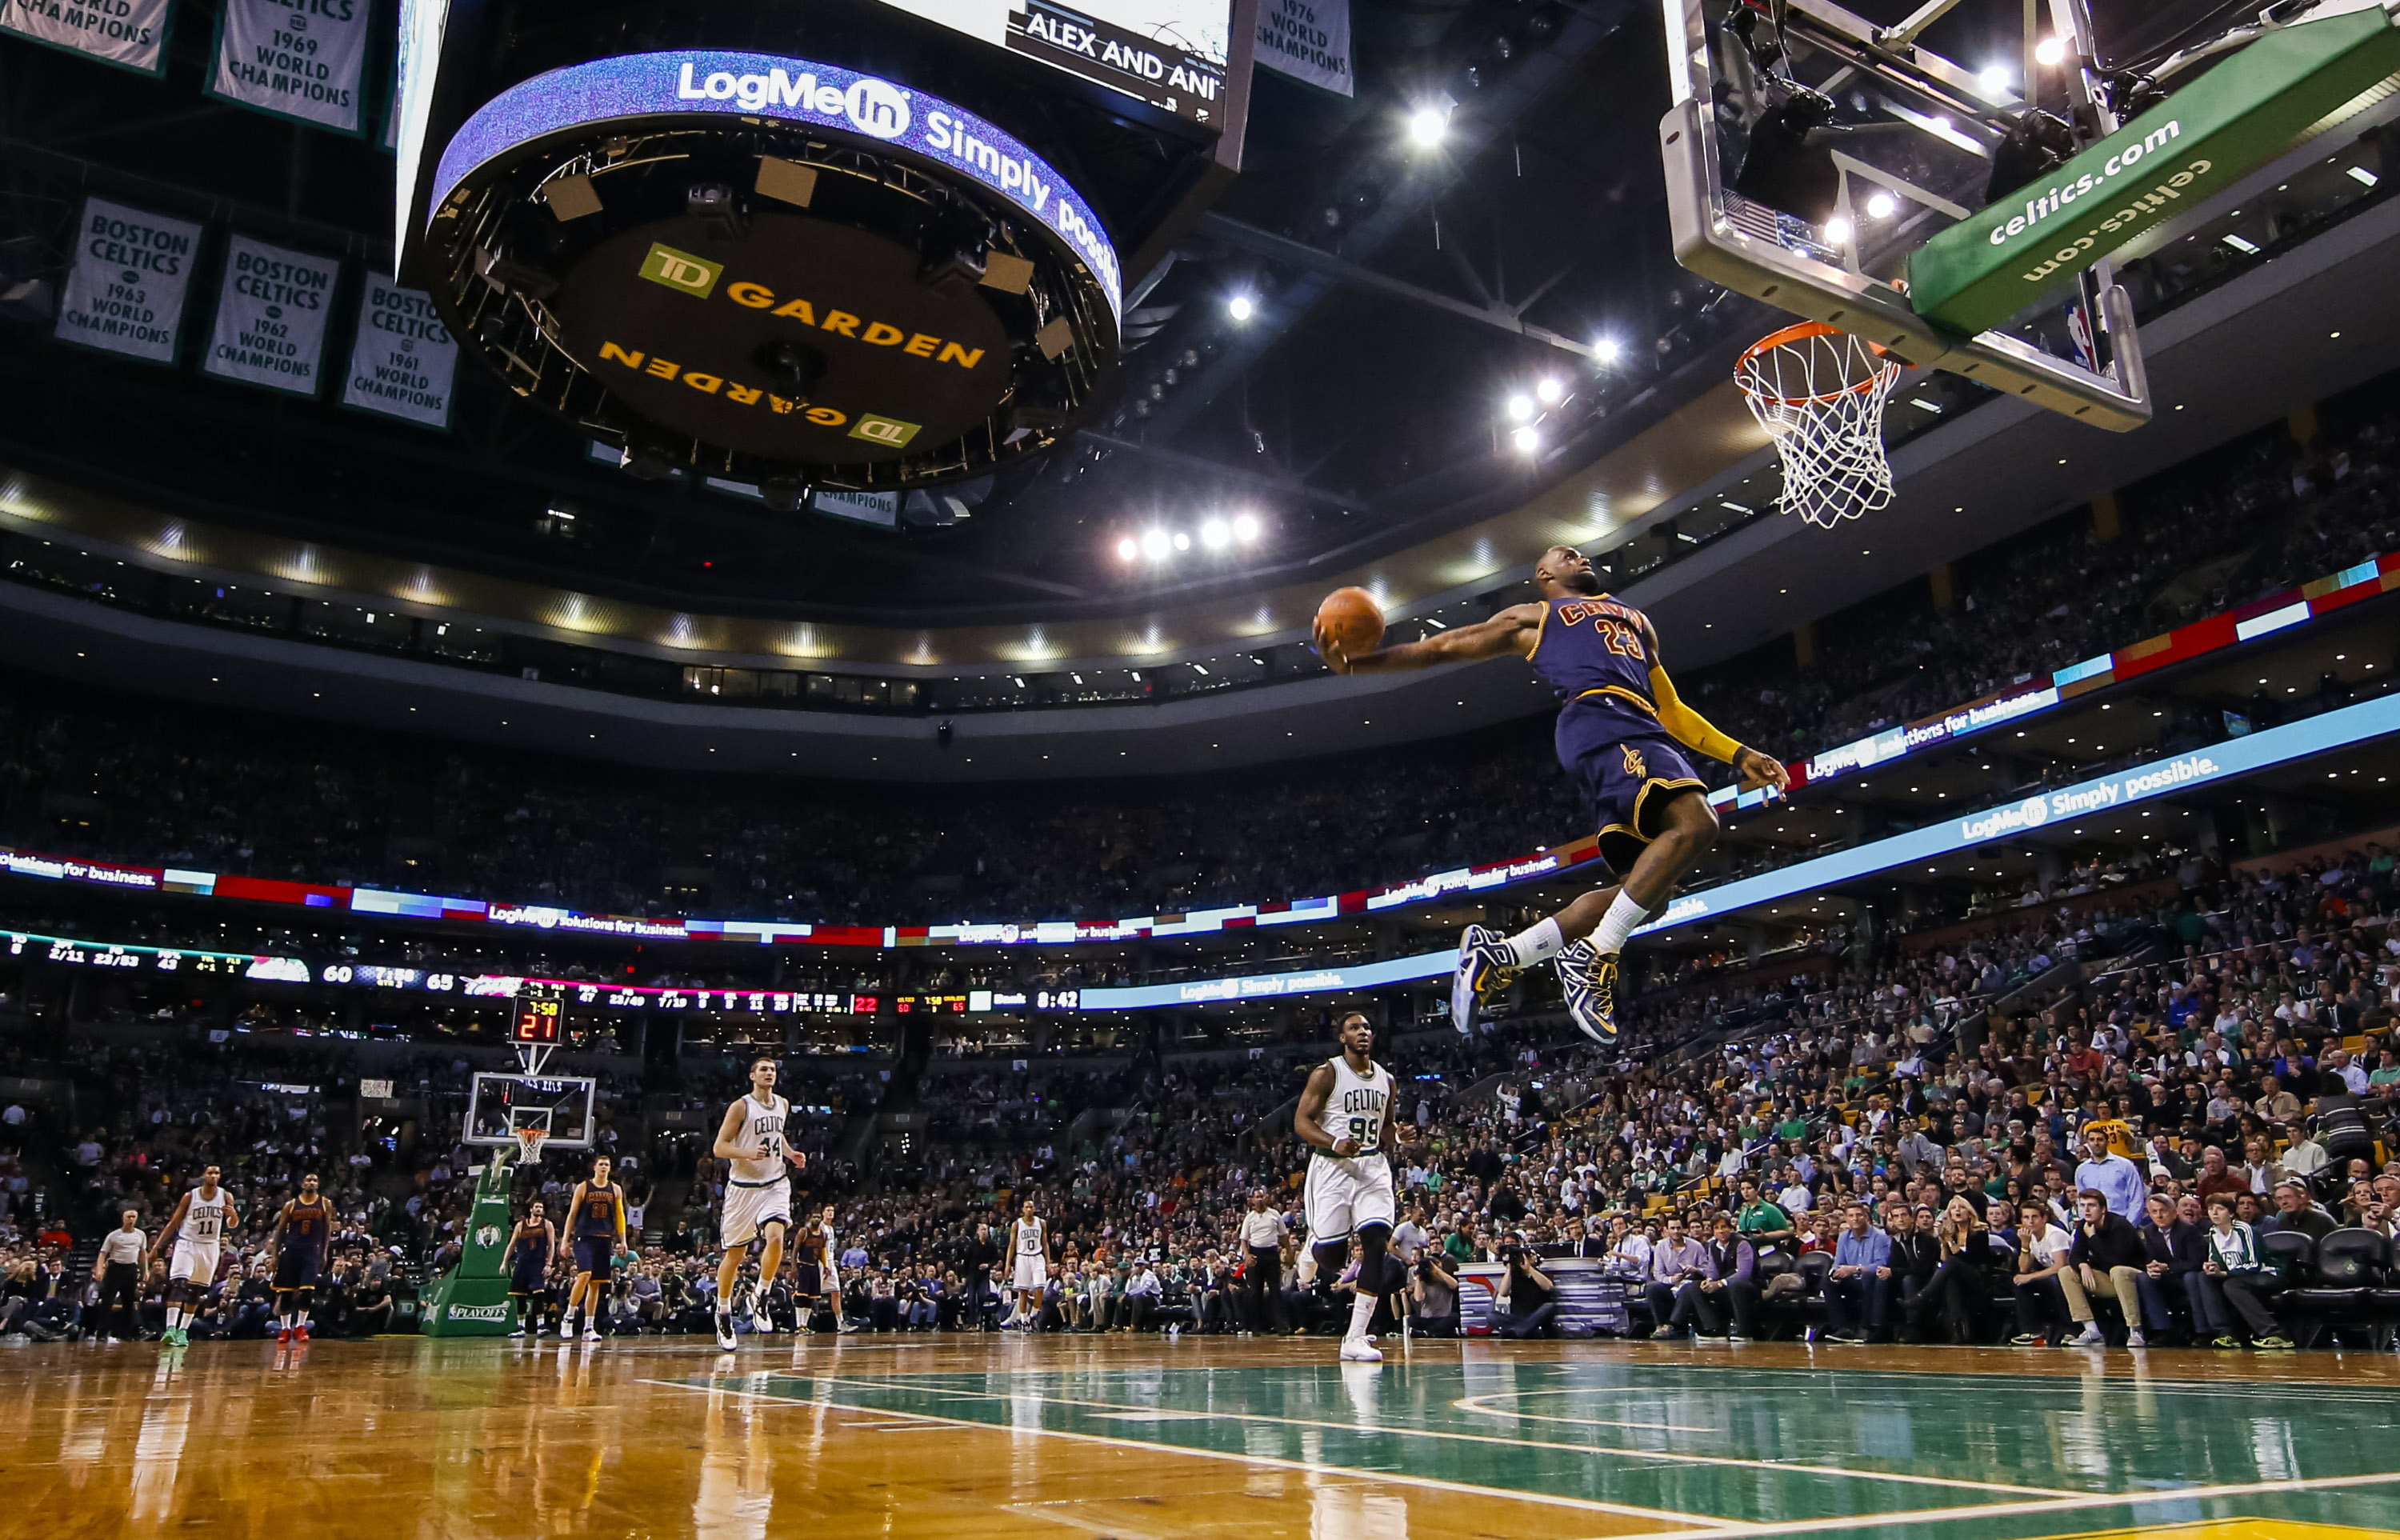 8535166-nba-playoffs-cleveland-cavaliers-at-boston-celtics